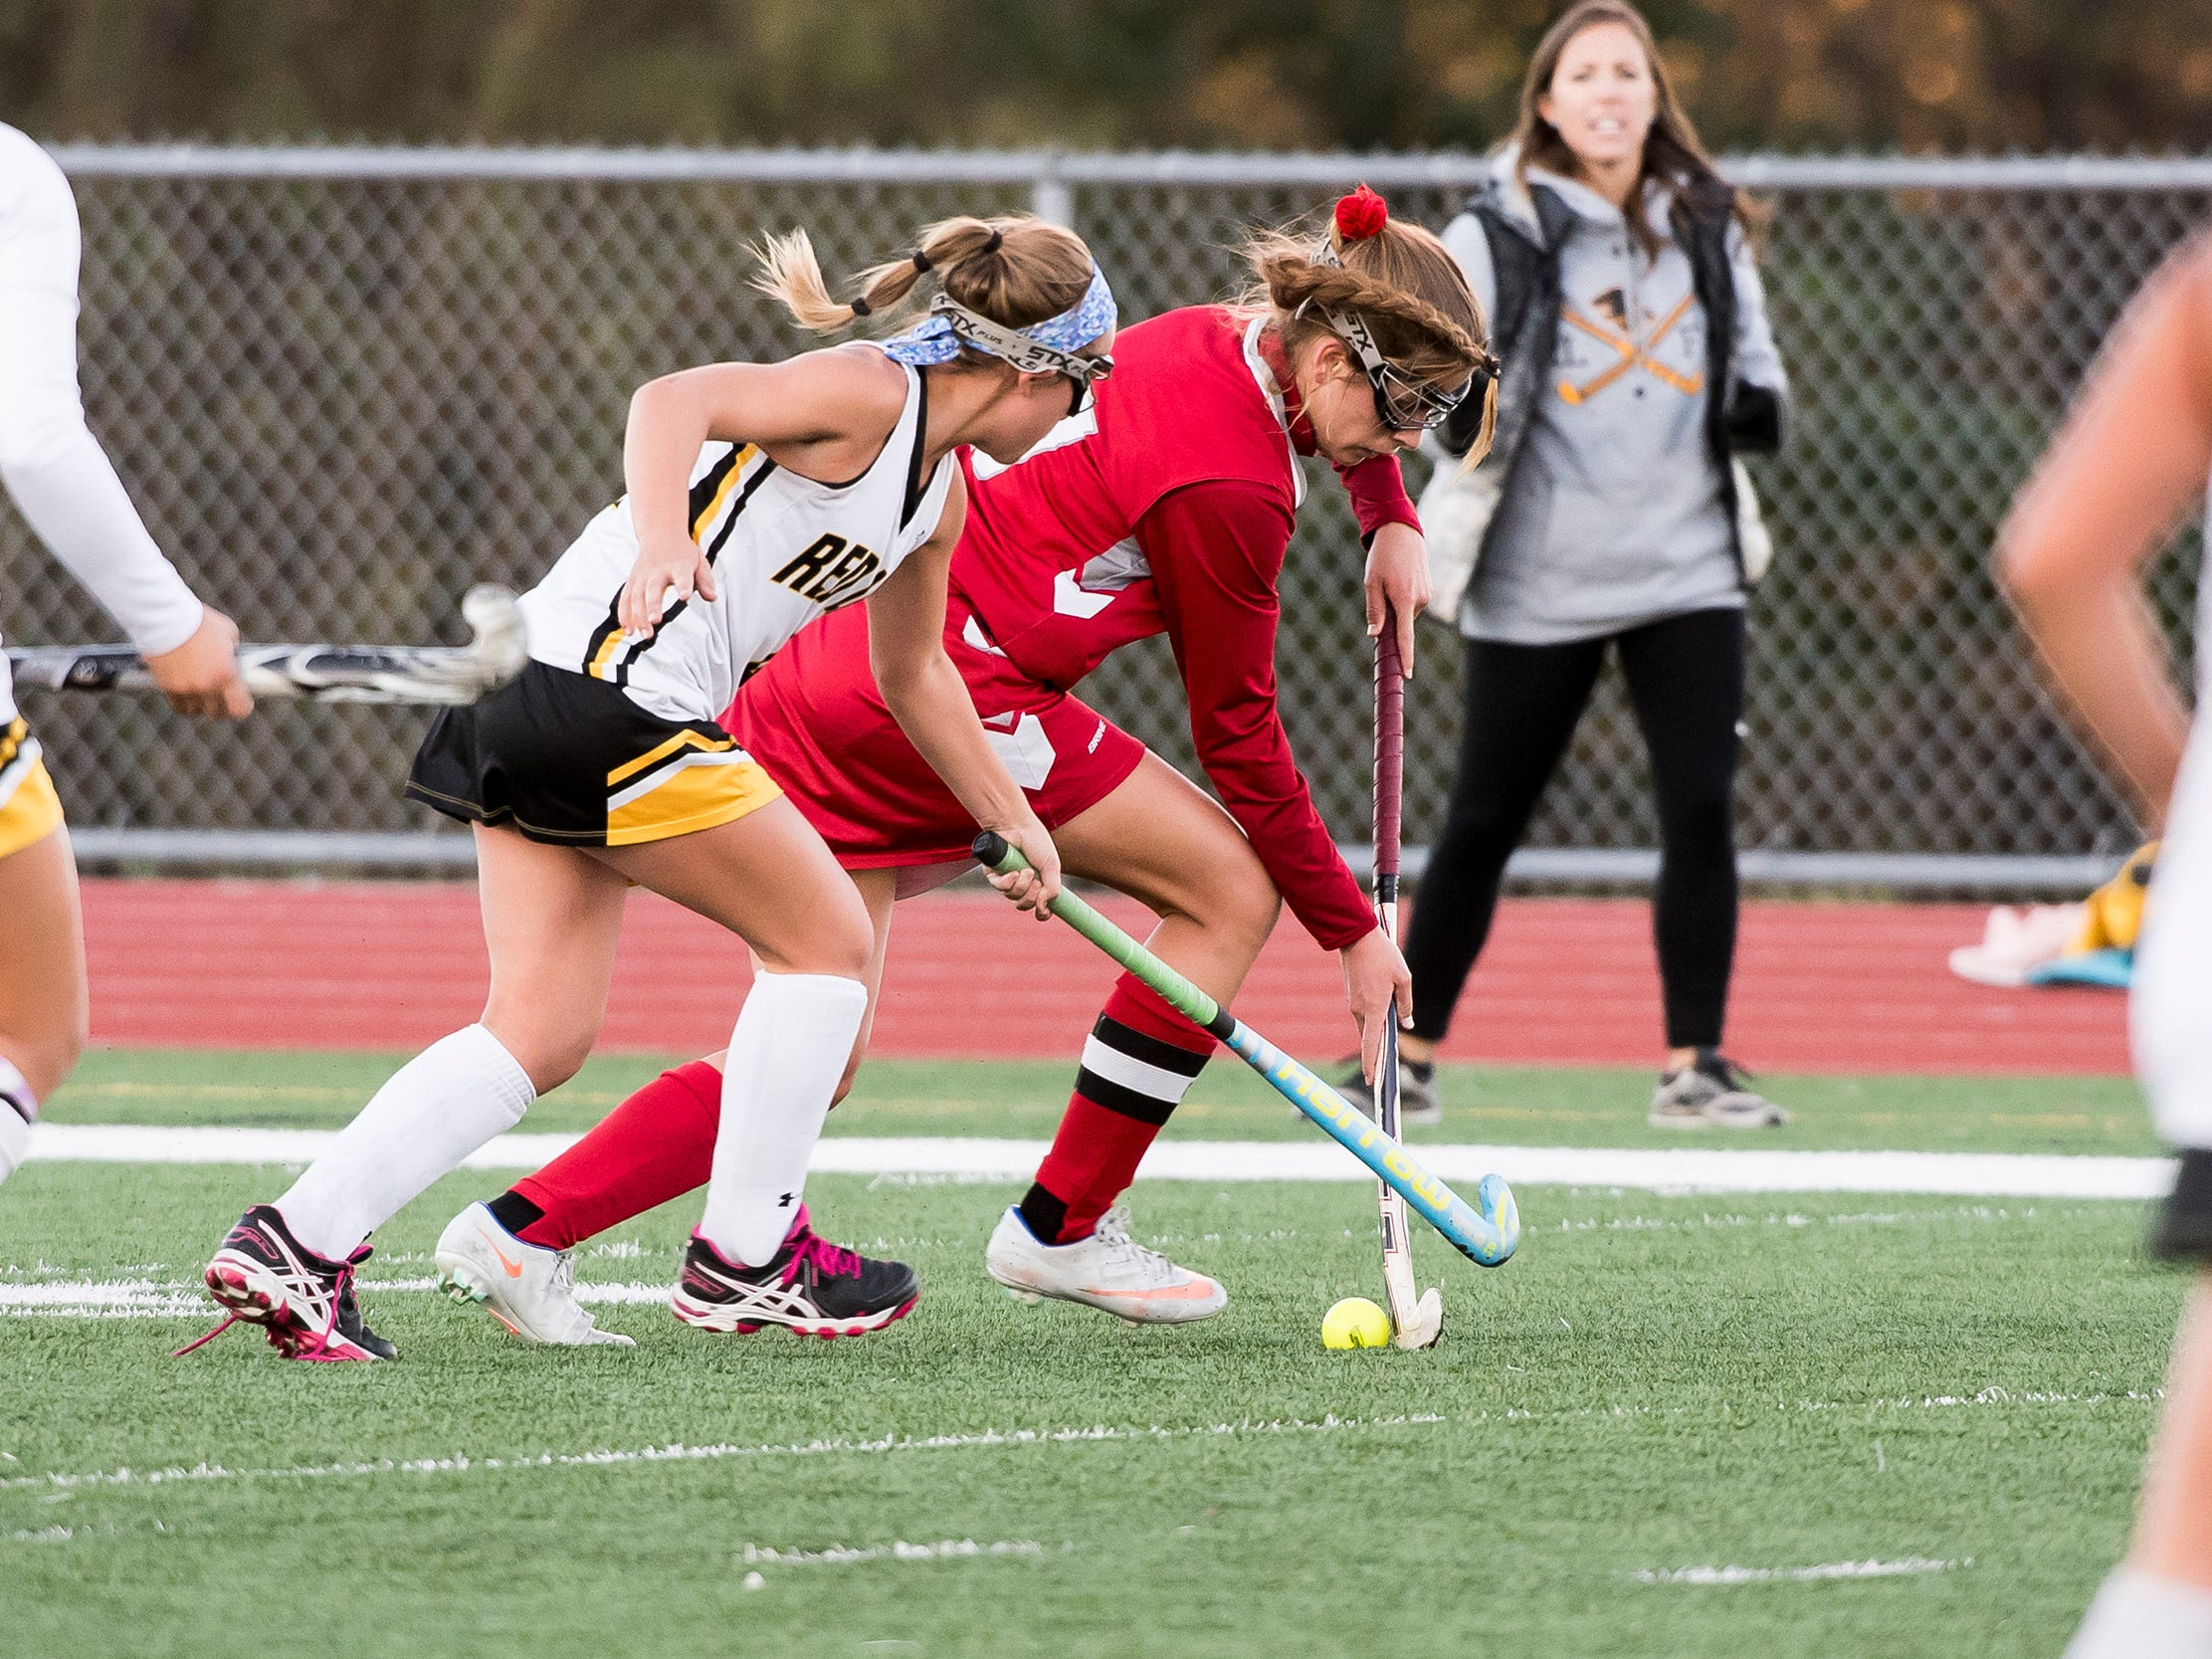 Bermudian Springs' Kaitlyn McCollum fights for the ball with Red Lion's Emma Waltemyer during a YAIAA tournament semifinal game on Thursday, October 18, 2018. The Eagles won 2-0 and will play Central York in the championship game Saturday.